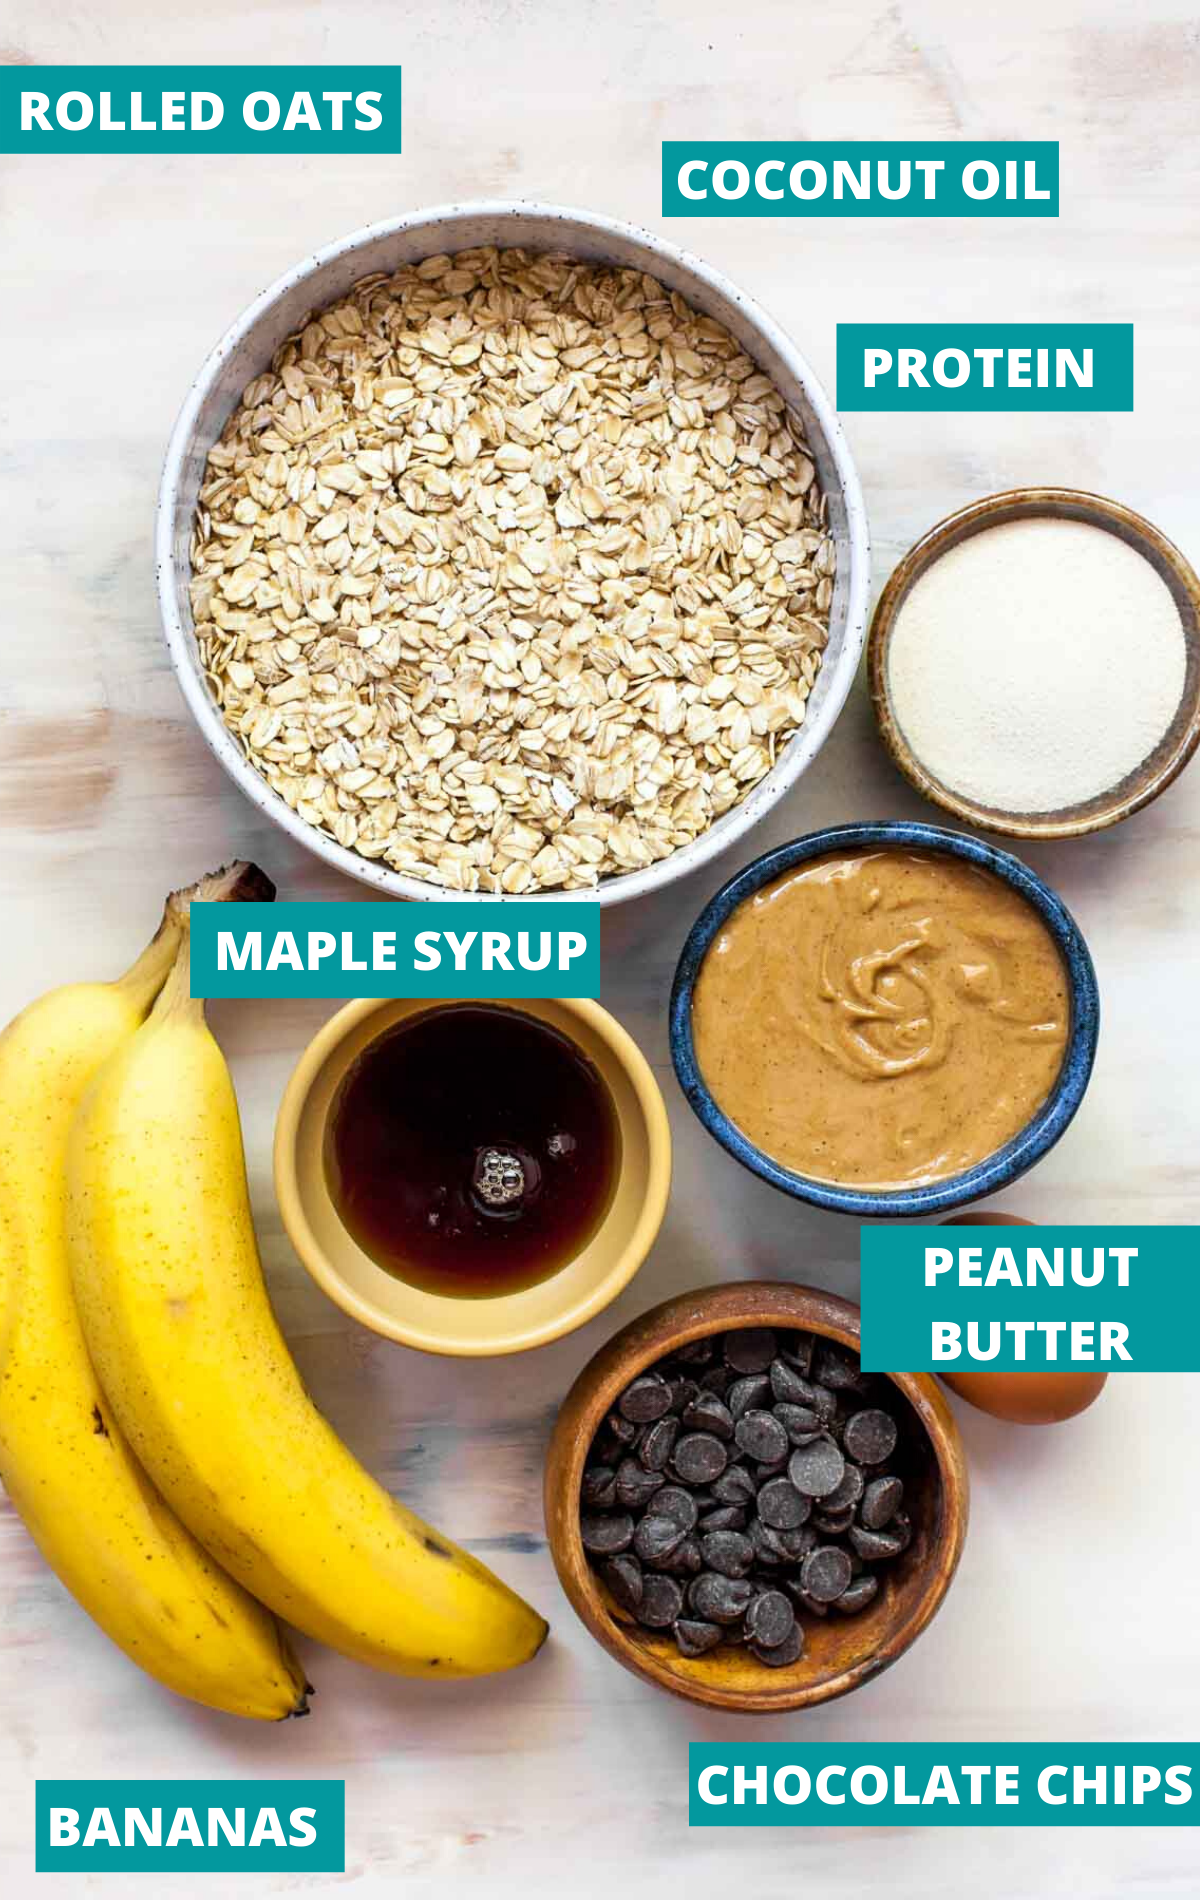 Bananas, oats, peanut butter, maple syrup, and chocolate chips in small bowls on a white surface